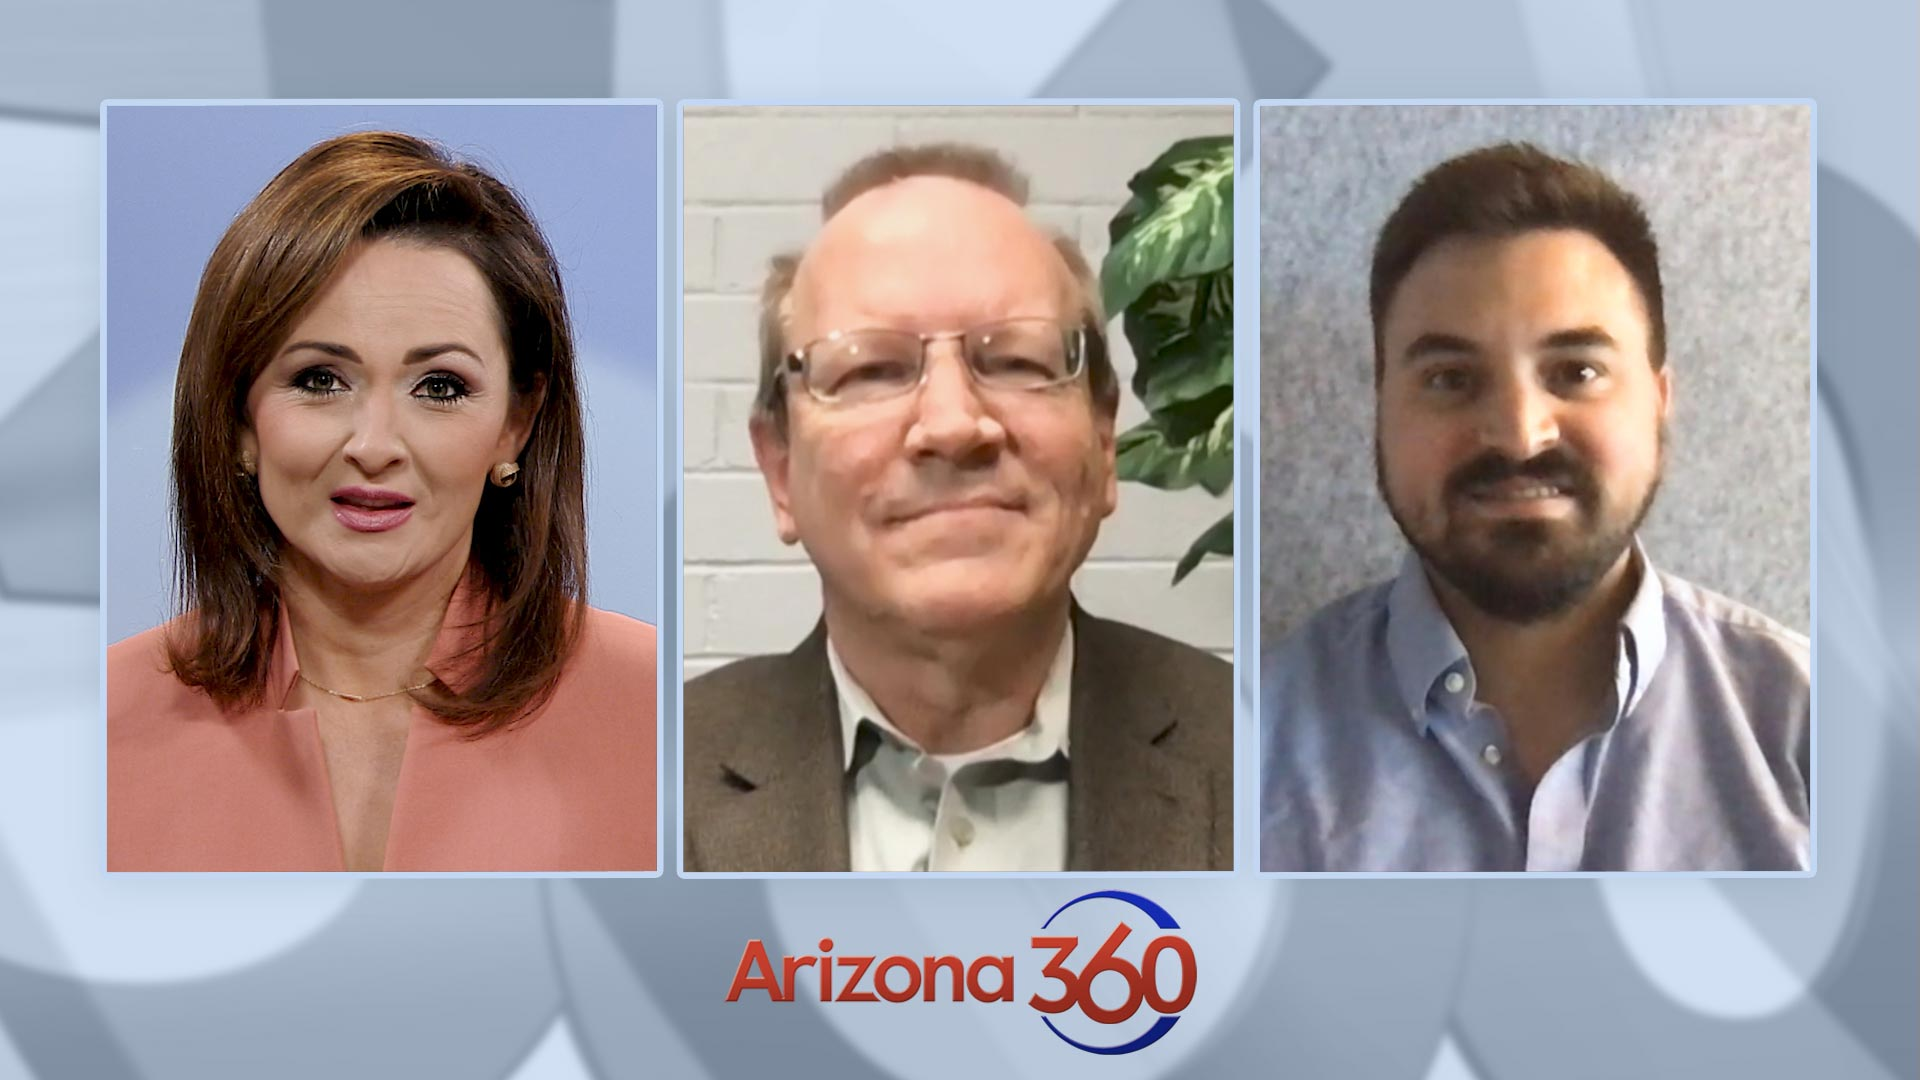 Arizona 360 host Lorraine Rivera, Green Valley News/Sahuarita Sun editor Dan Shearer and 1030 KVOI AM Tipping Point host Zach Yentzer. Nov. 12, 2020.